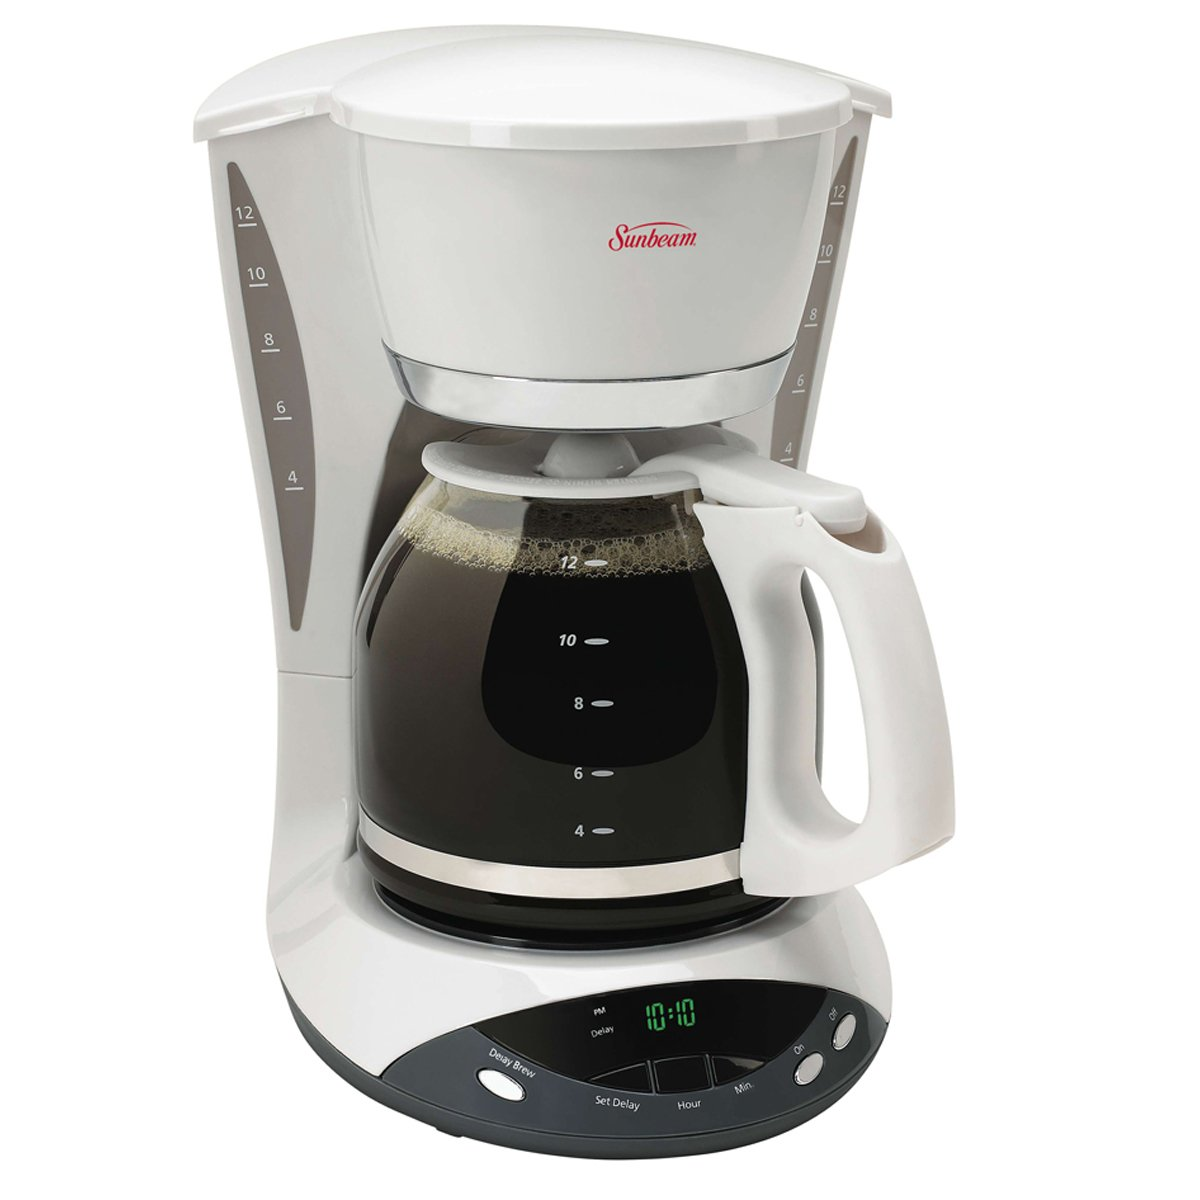 sunbeam 12 cup programmable coffeemaker white 6101 33 sunbeam canada. Black Bedroom Furniture Sets. Home Design Ideas